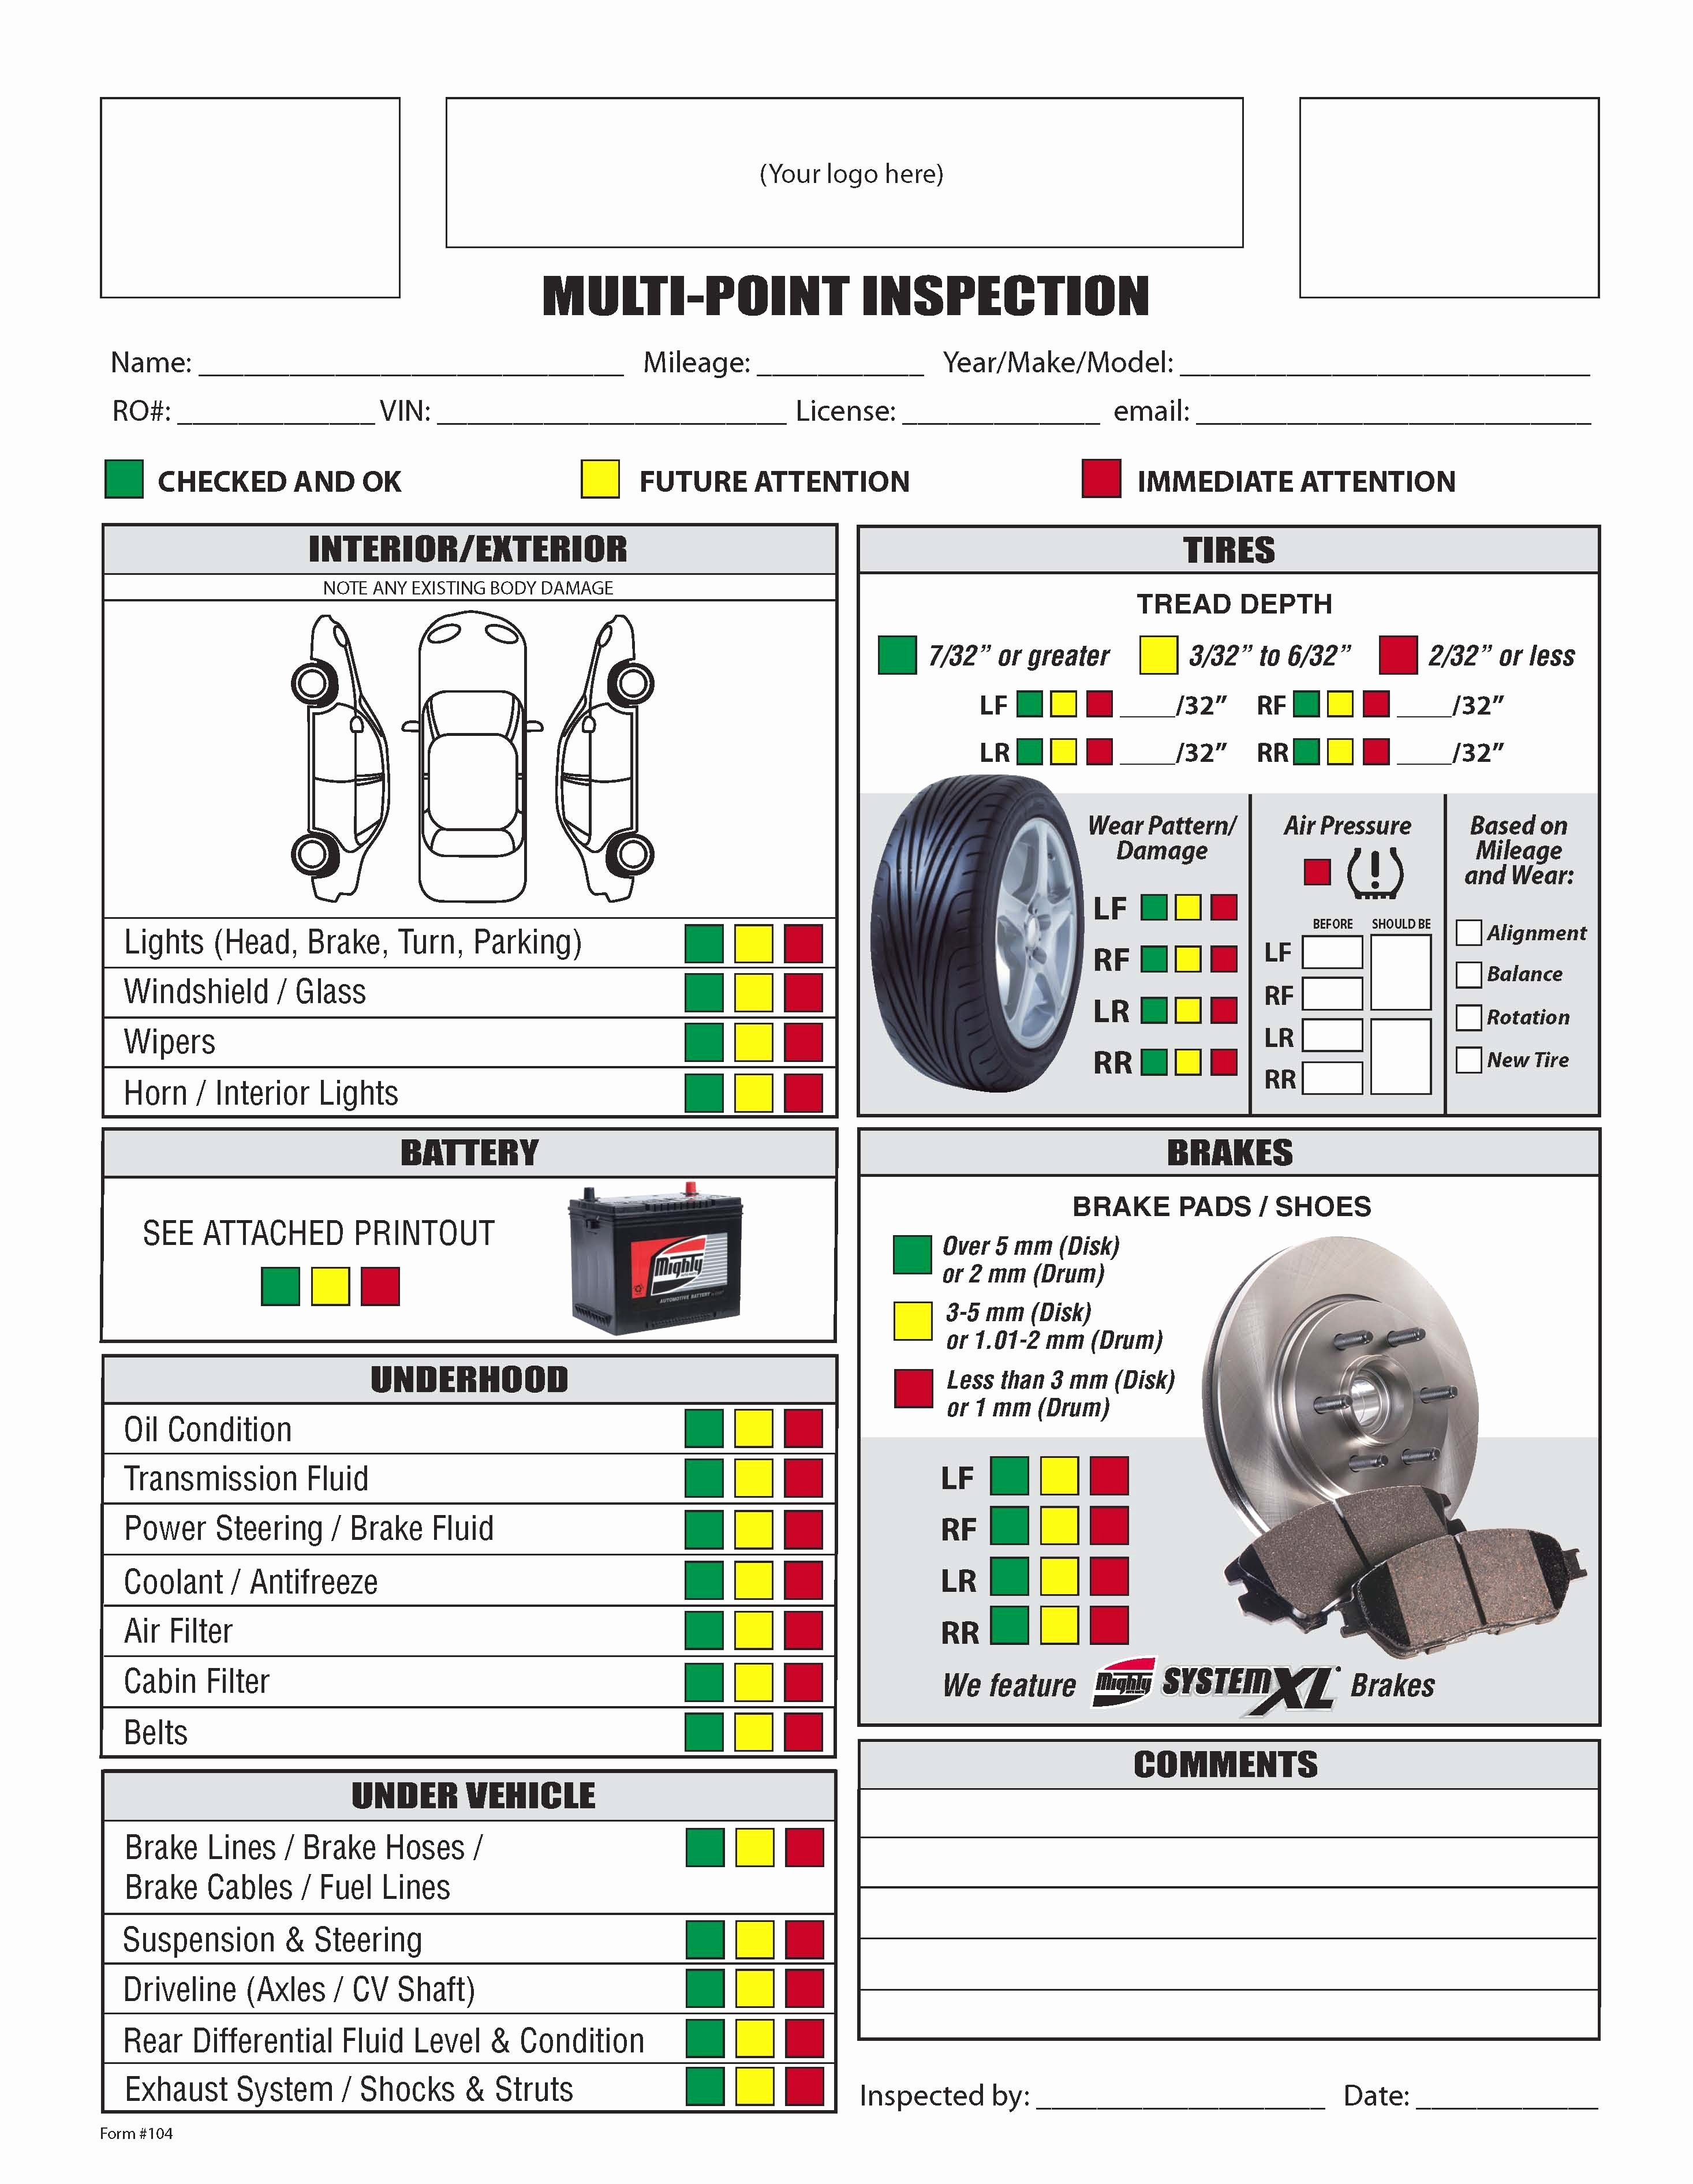 Truck Inspection form Template Inspirational Image Result for Vehicle Parts Checklist